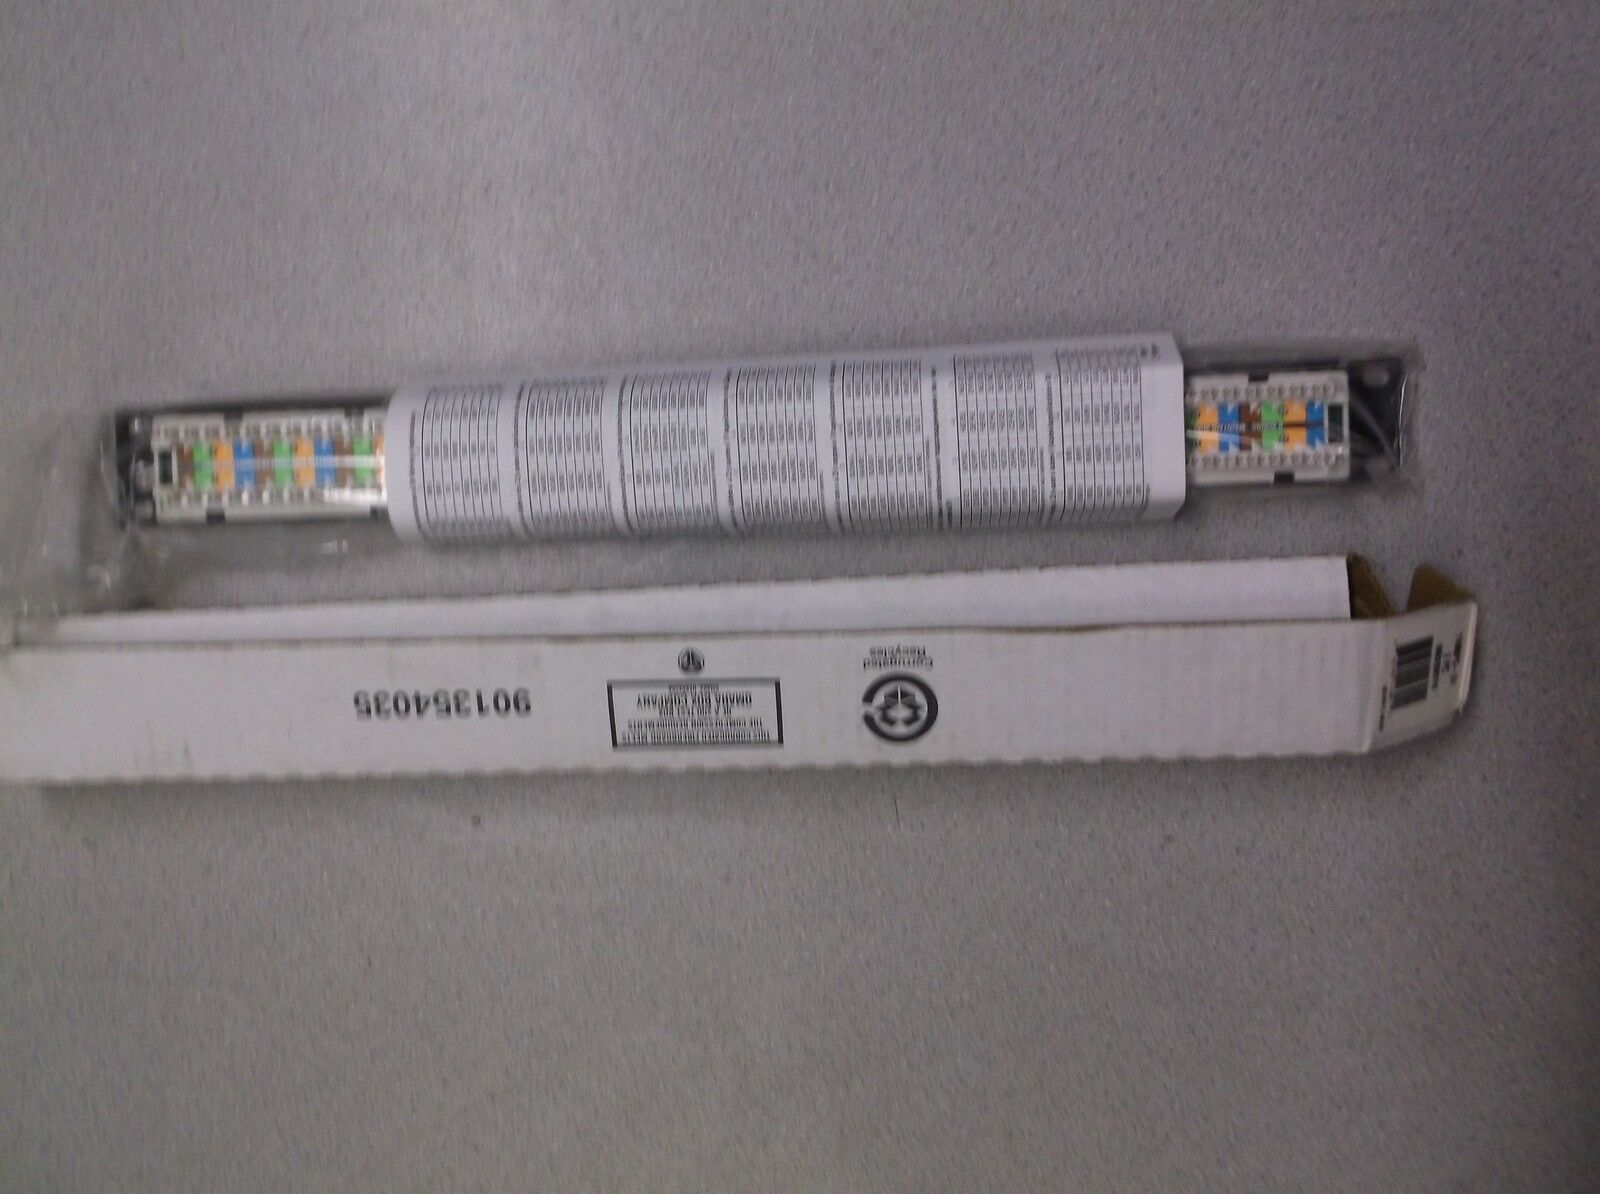 Commscope Systimax 1100ps 24 Modular Jack Rack Panel 108208919 Ebay Wiring Block Norton Secured Powered By Verisign